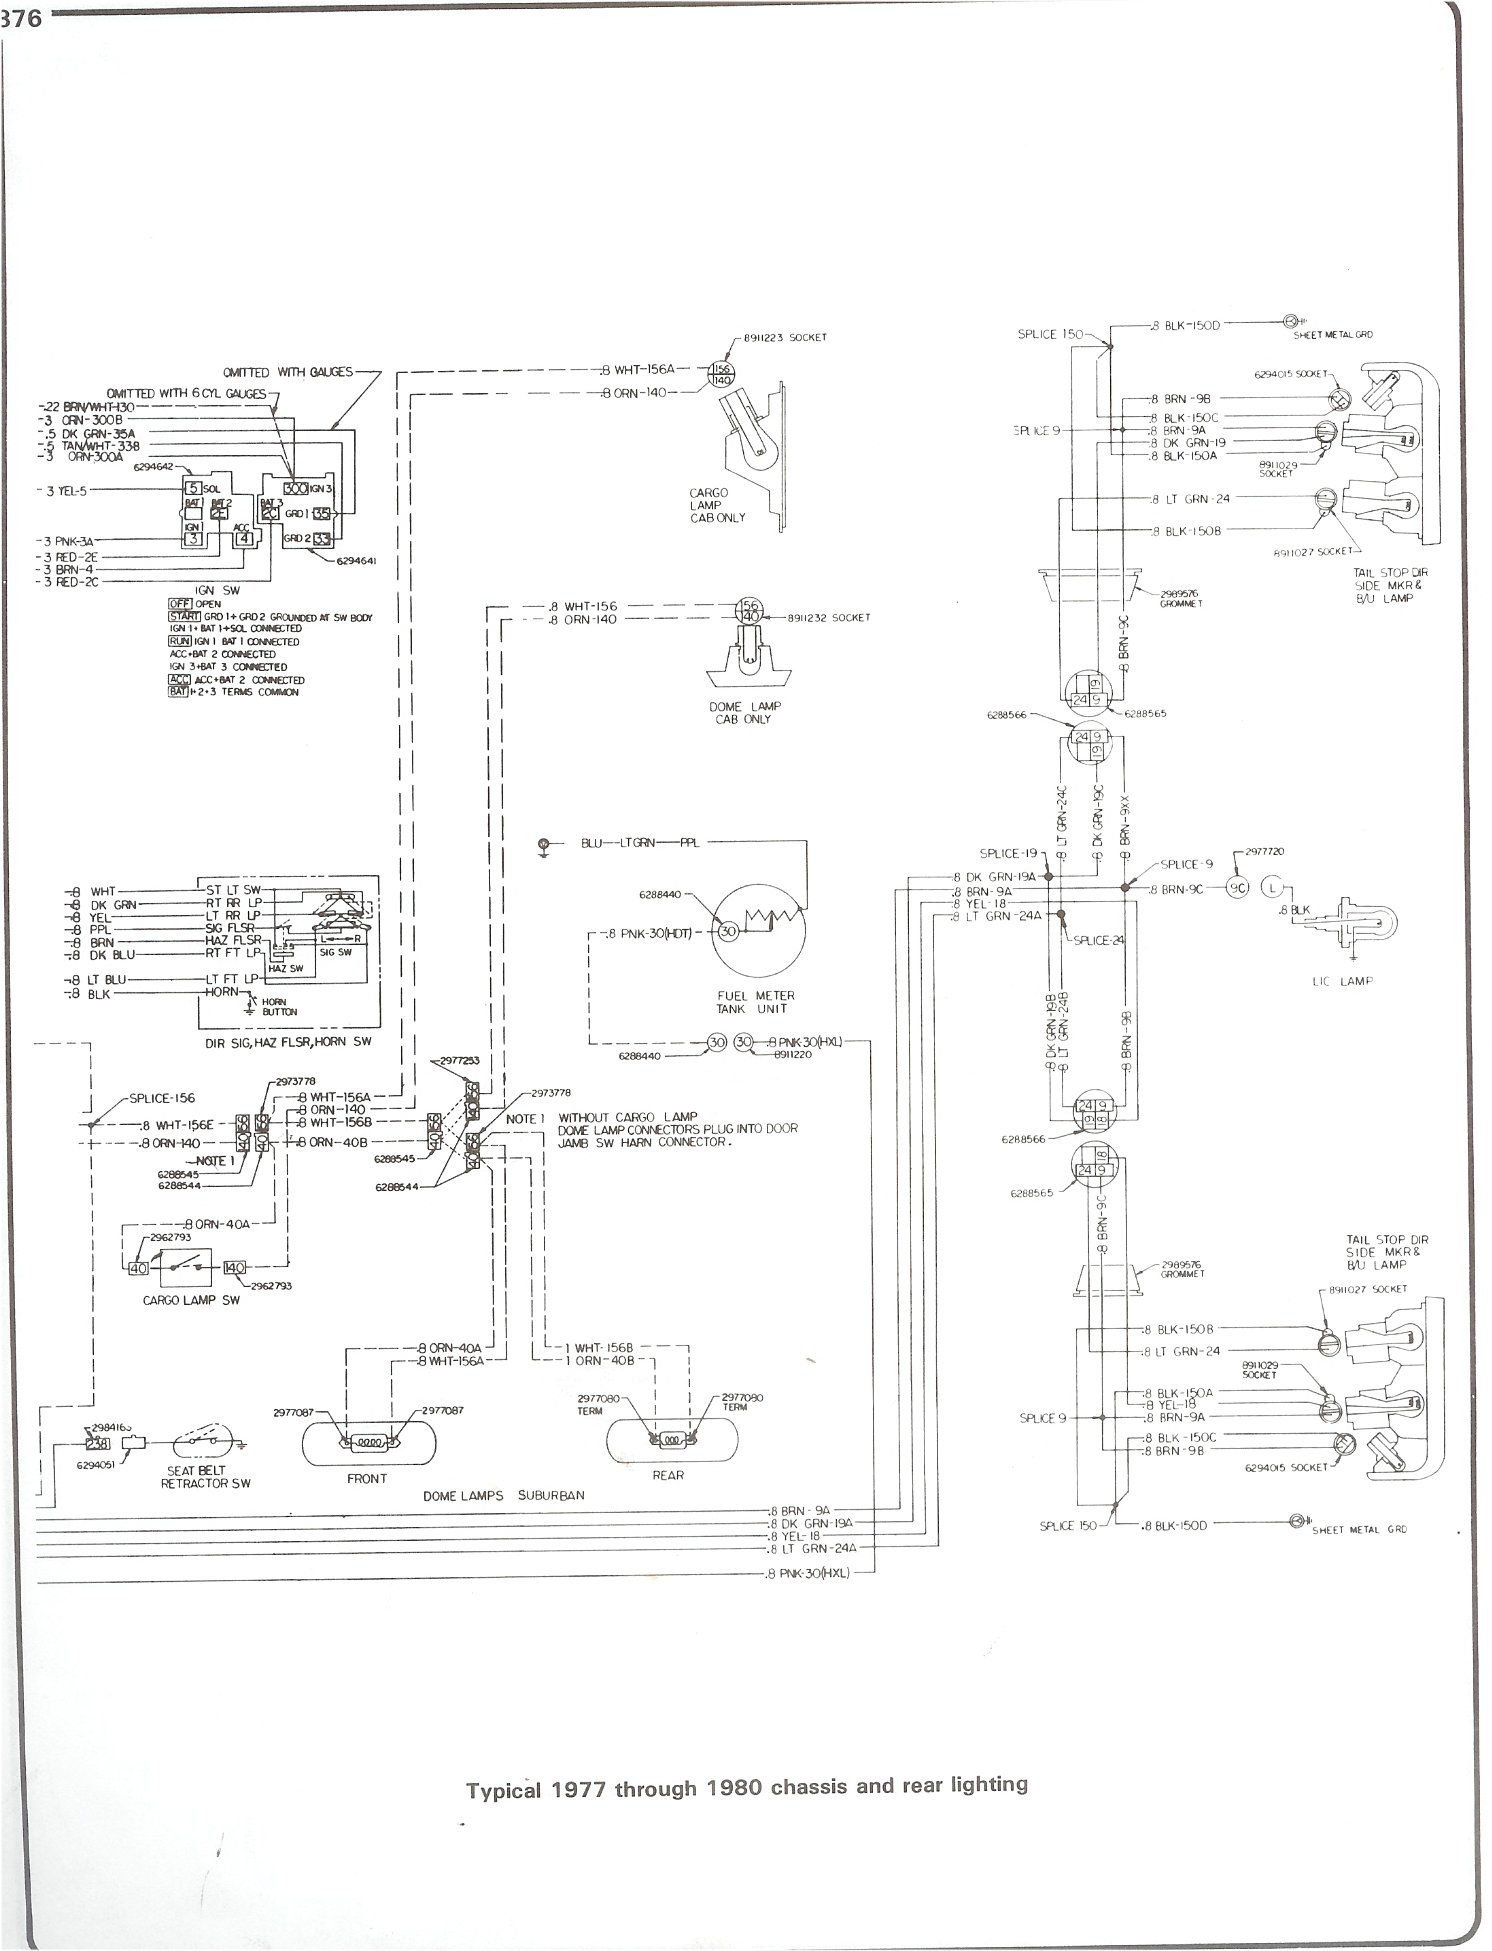 87 chevy truck ignition wiring diagram complete 73-87 wiring diagrams